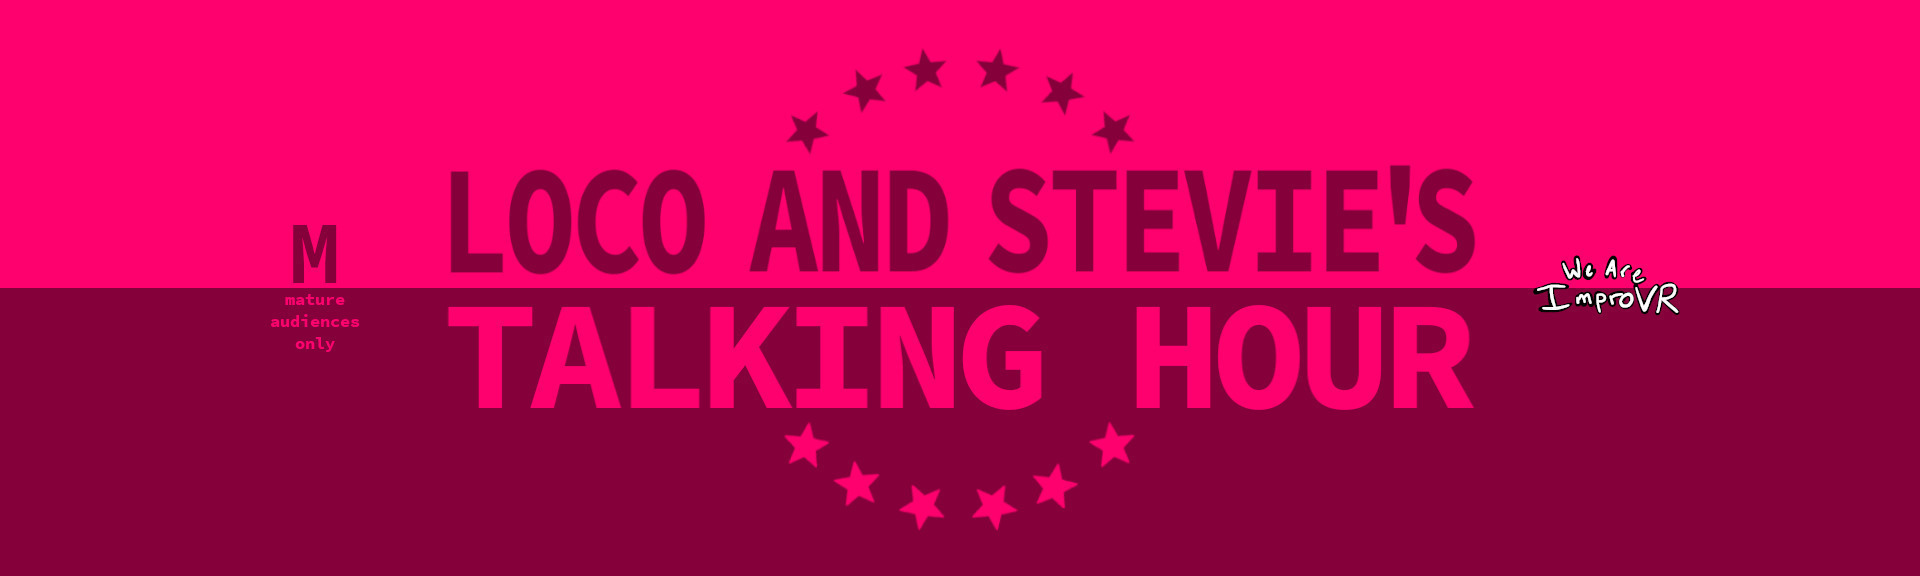 Loco talking hour banner test